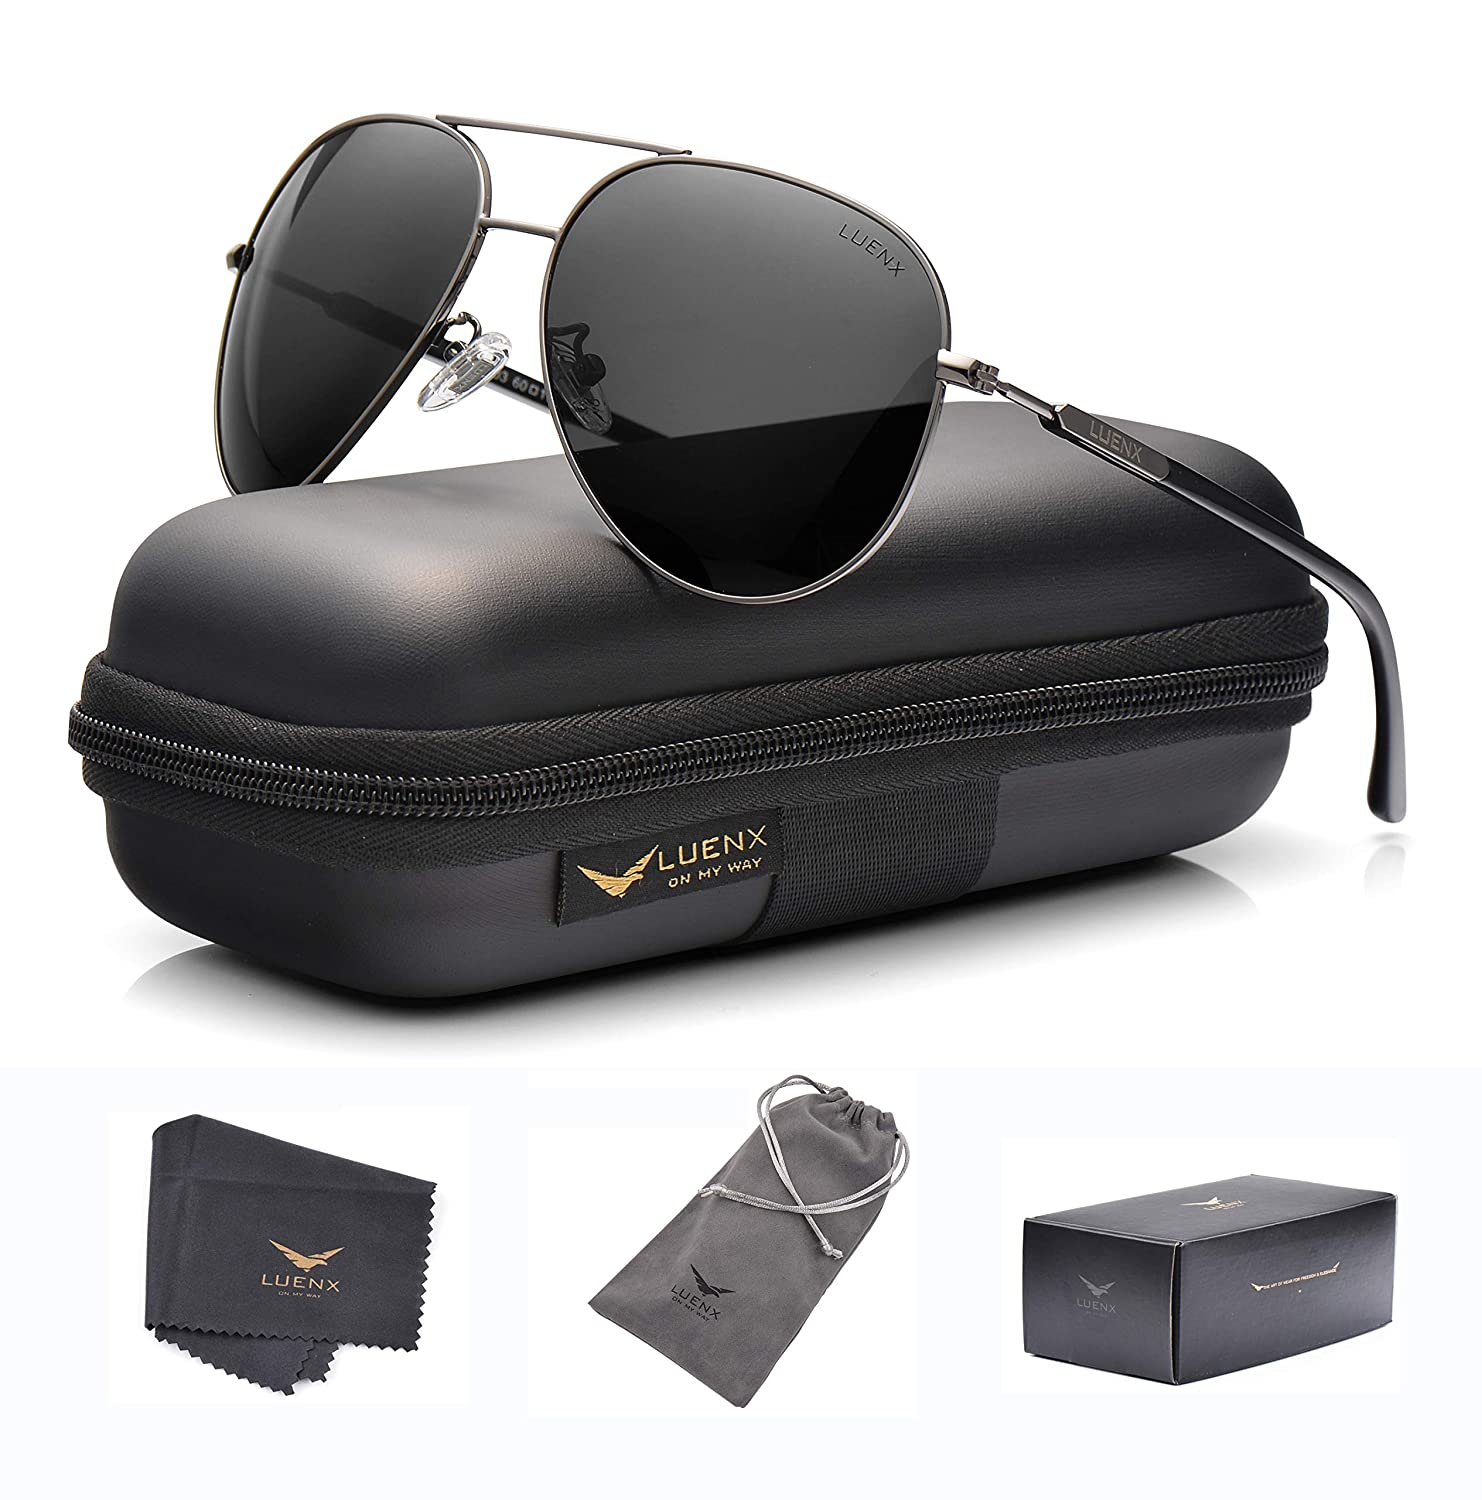 d4a18df07 LUENX Aviator Sunglasses Womens Mens Polarized Mirror with Case - UV 400  Protection Grey Size: Large: Amazon.co.uk: Clothing